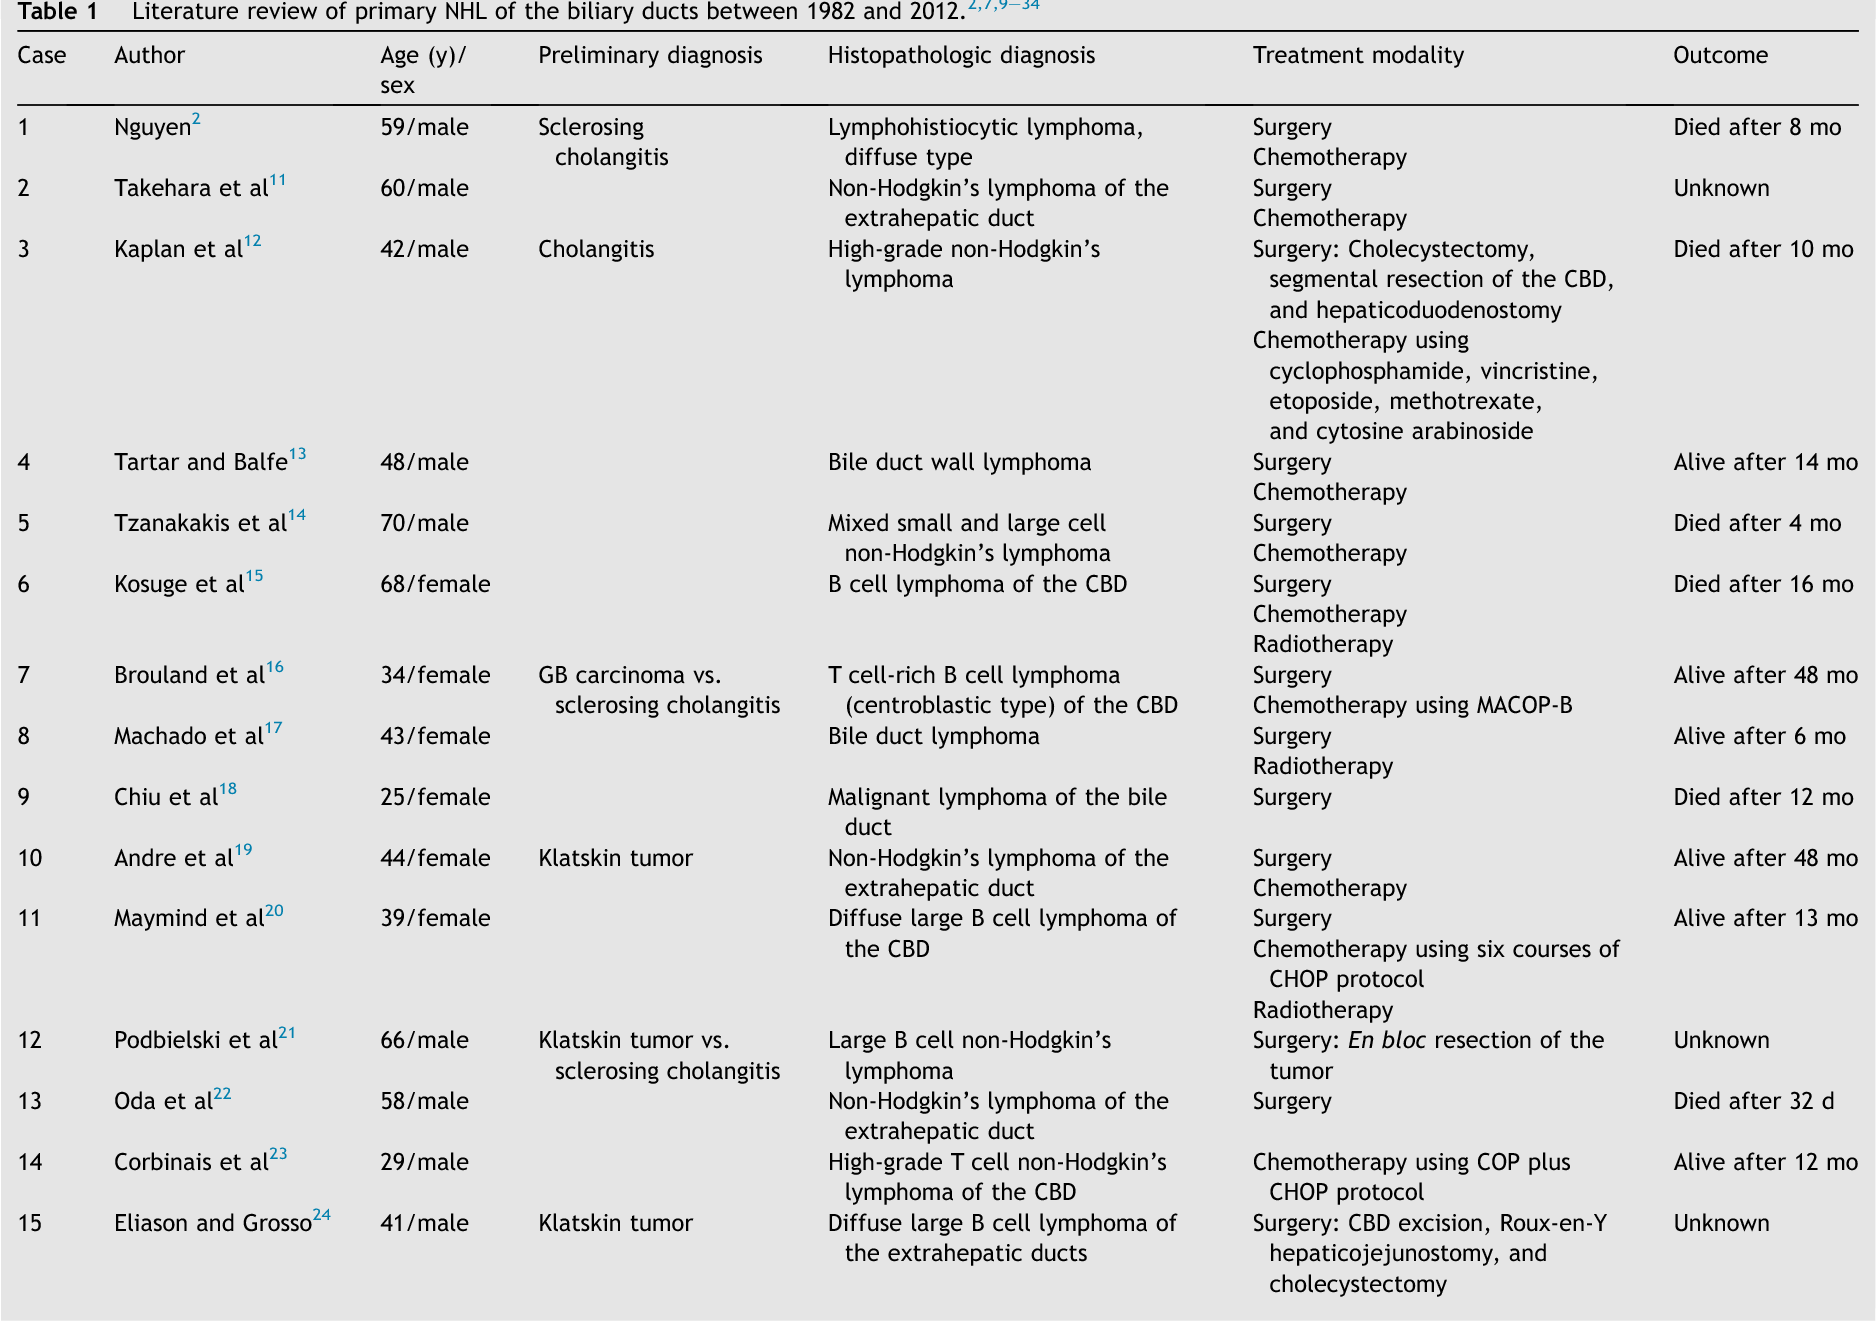 Table 1 from Primary non-Hodgkin's lymphoma of the common